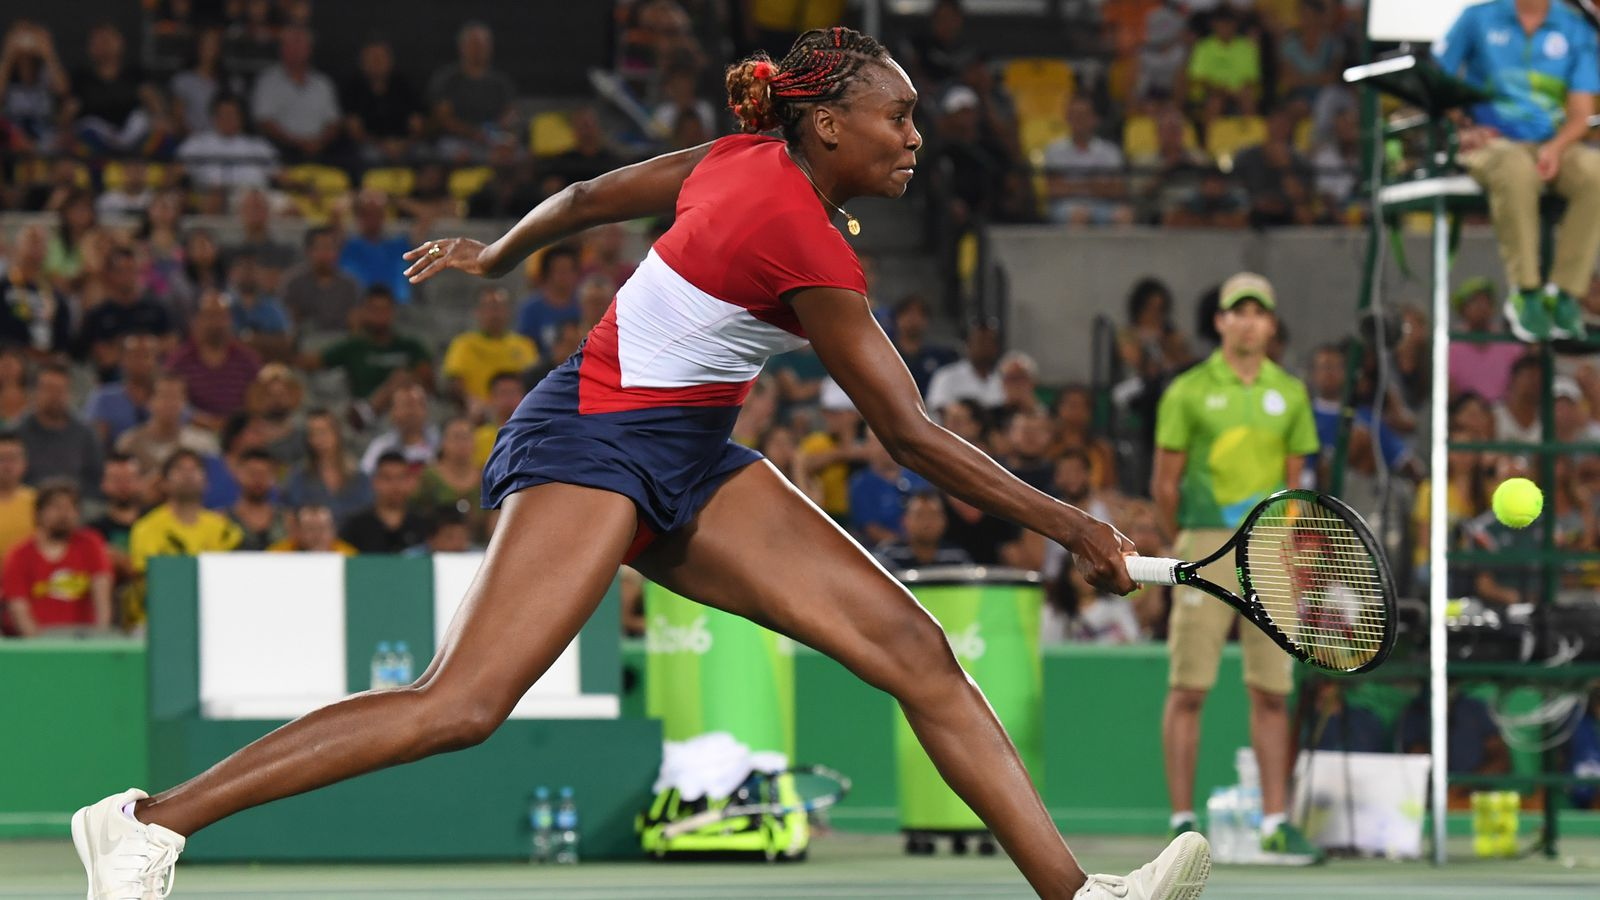 Olympics 2016 tennis results and scores: Venus Williams lose